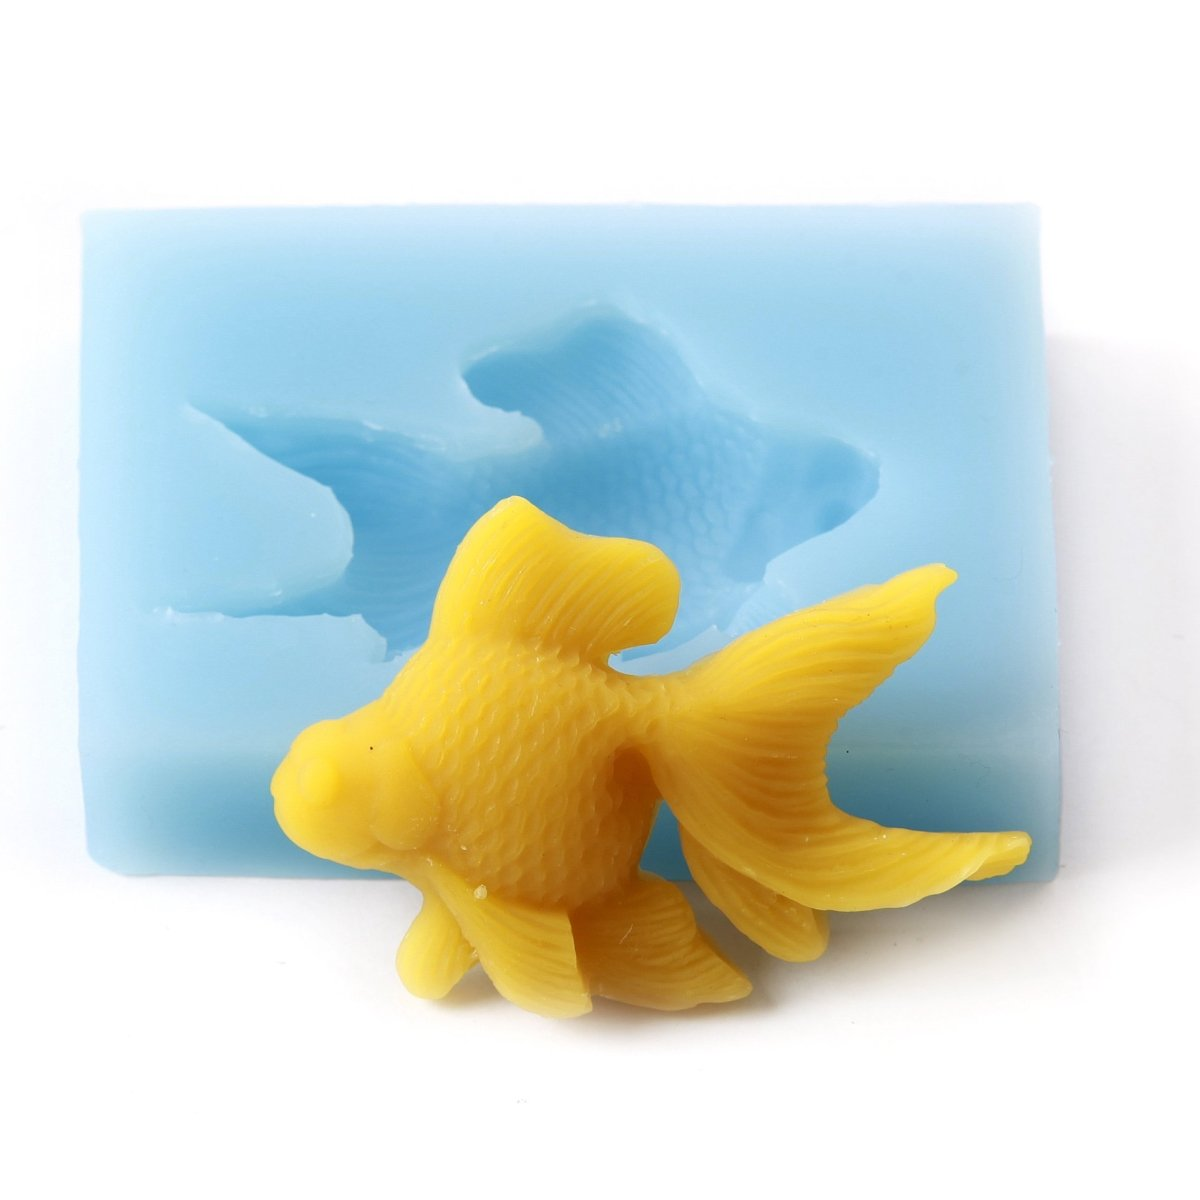 Fondant Icing Cake Decorating Silicone Fish Shape Mould Q0001 - Mystic Moments UK